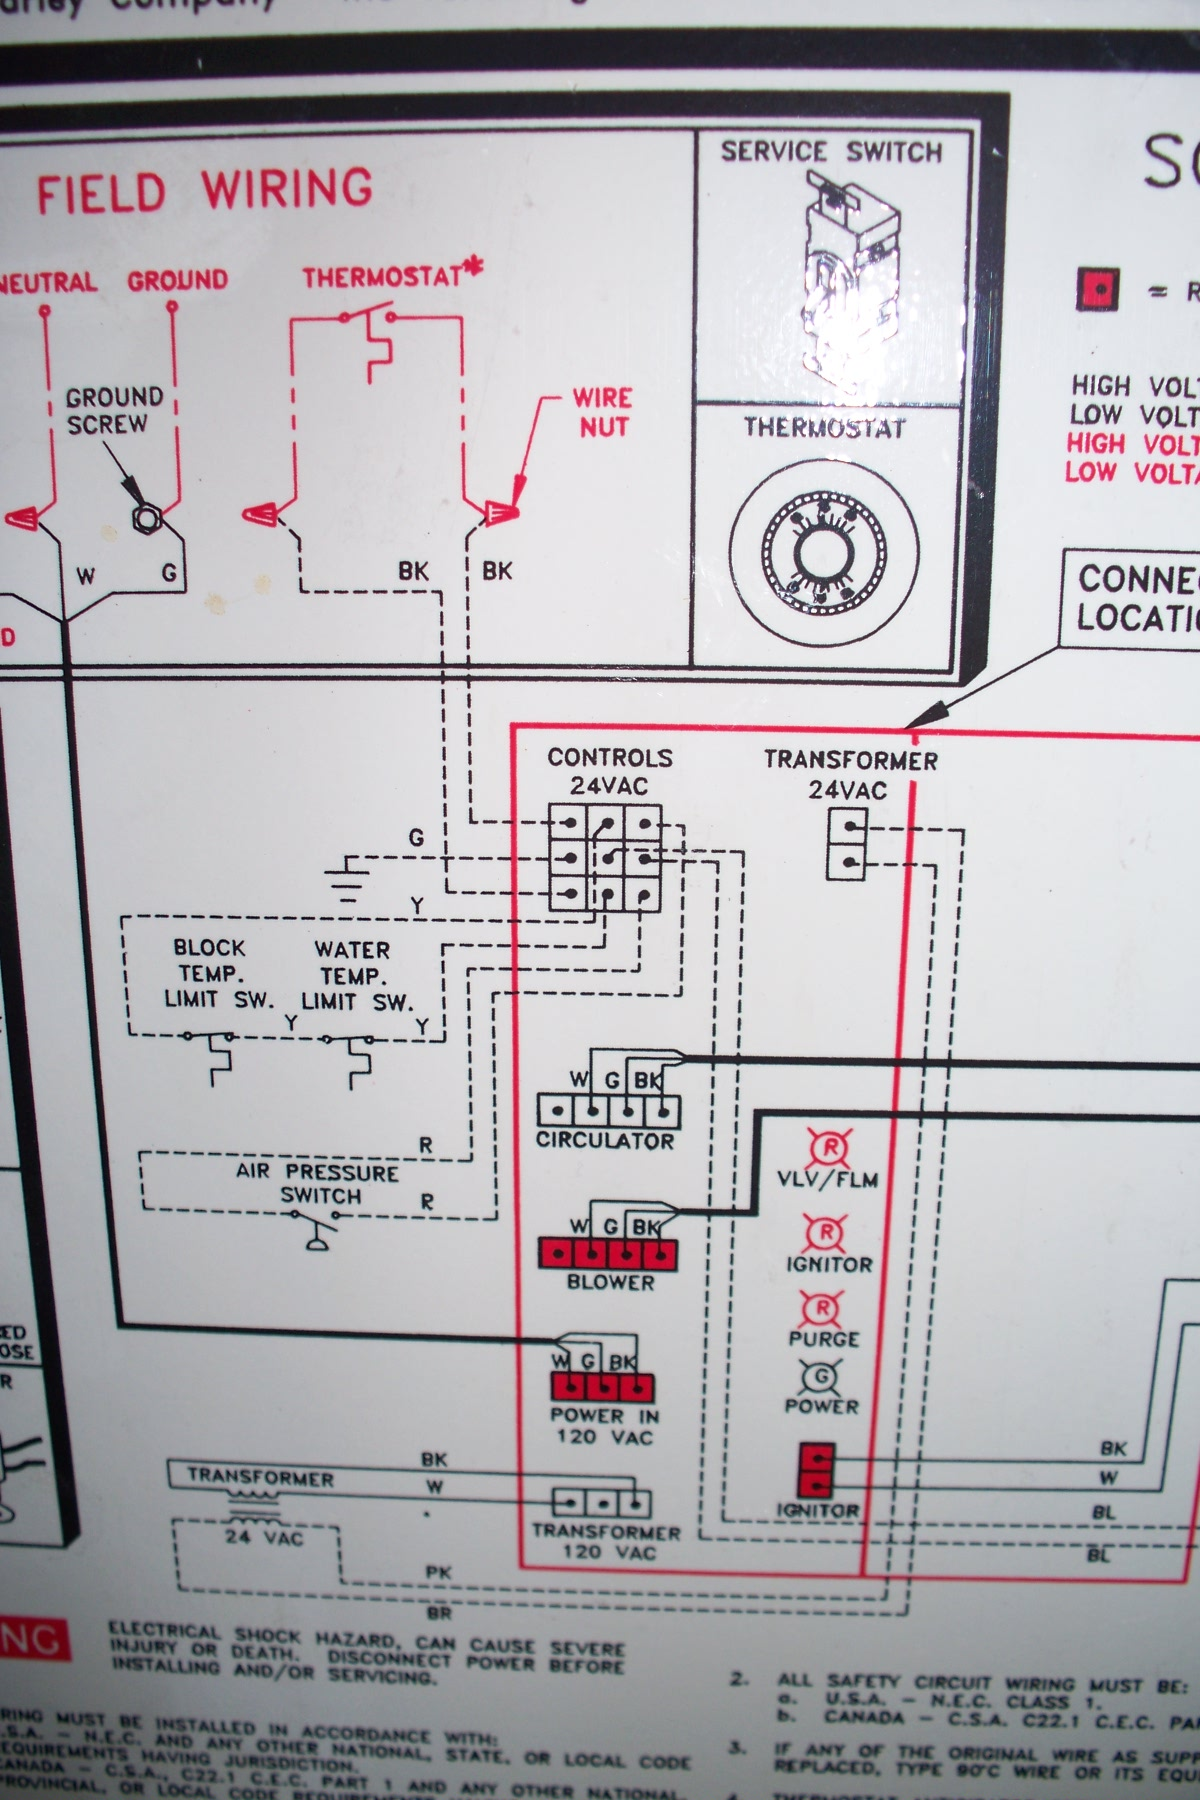 i have a weil mclain gv 5 series 2 boiler with an amtrol boilermate rh justanswer com Residential Electrical Wiring Diagrams 3-Way Switch Wiring Diagram